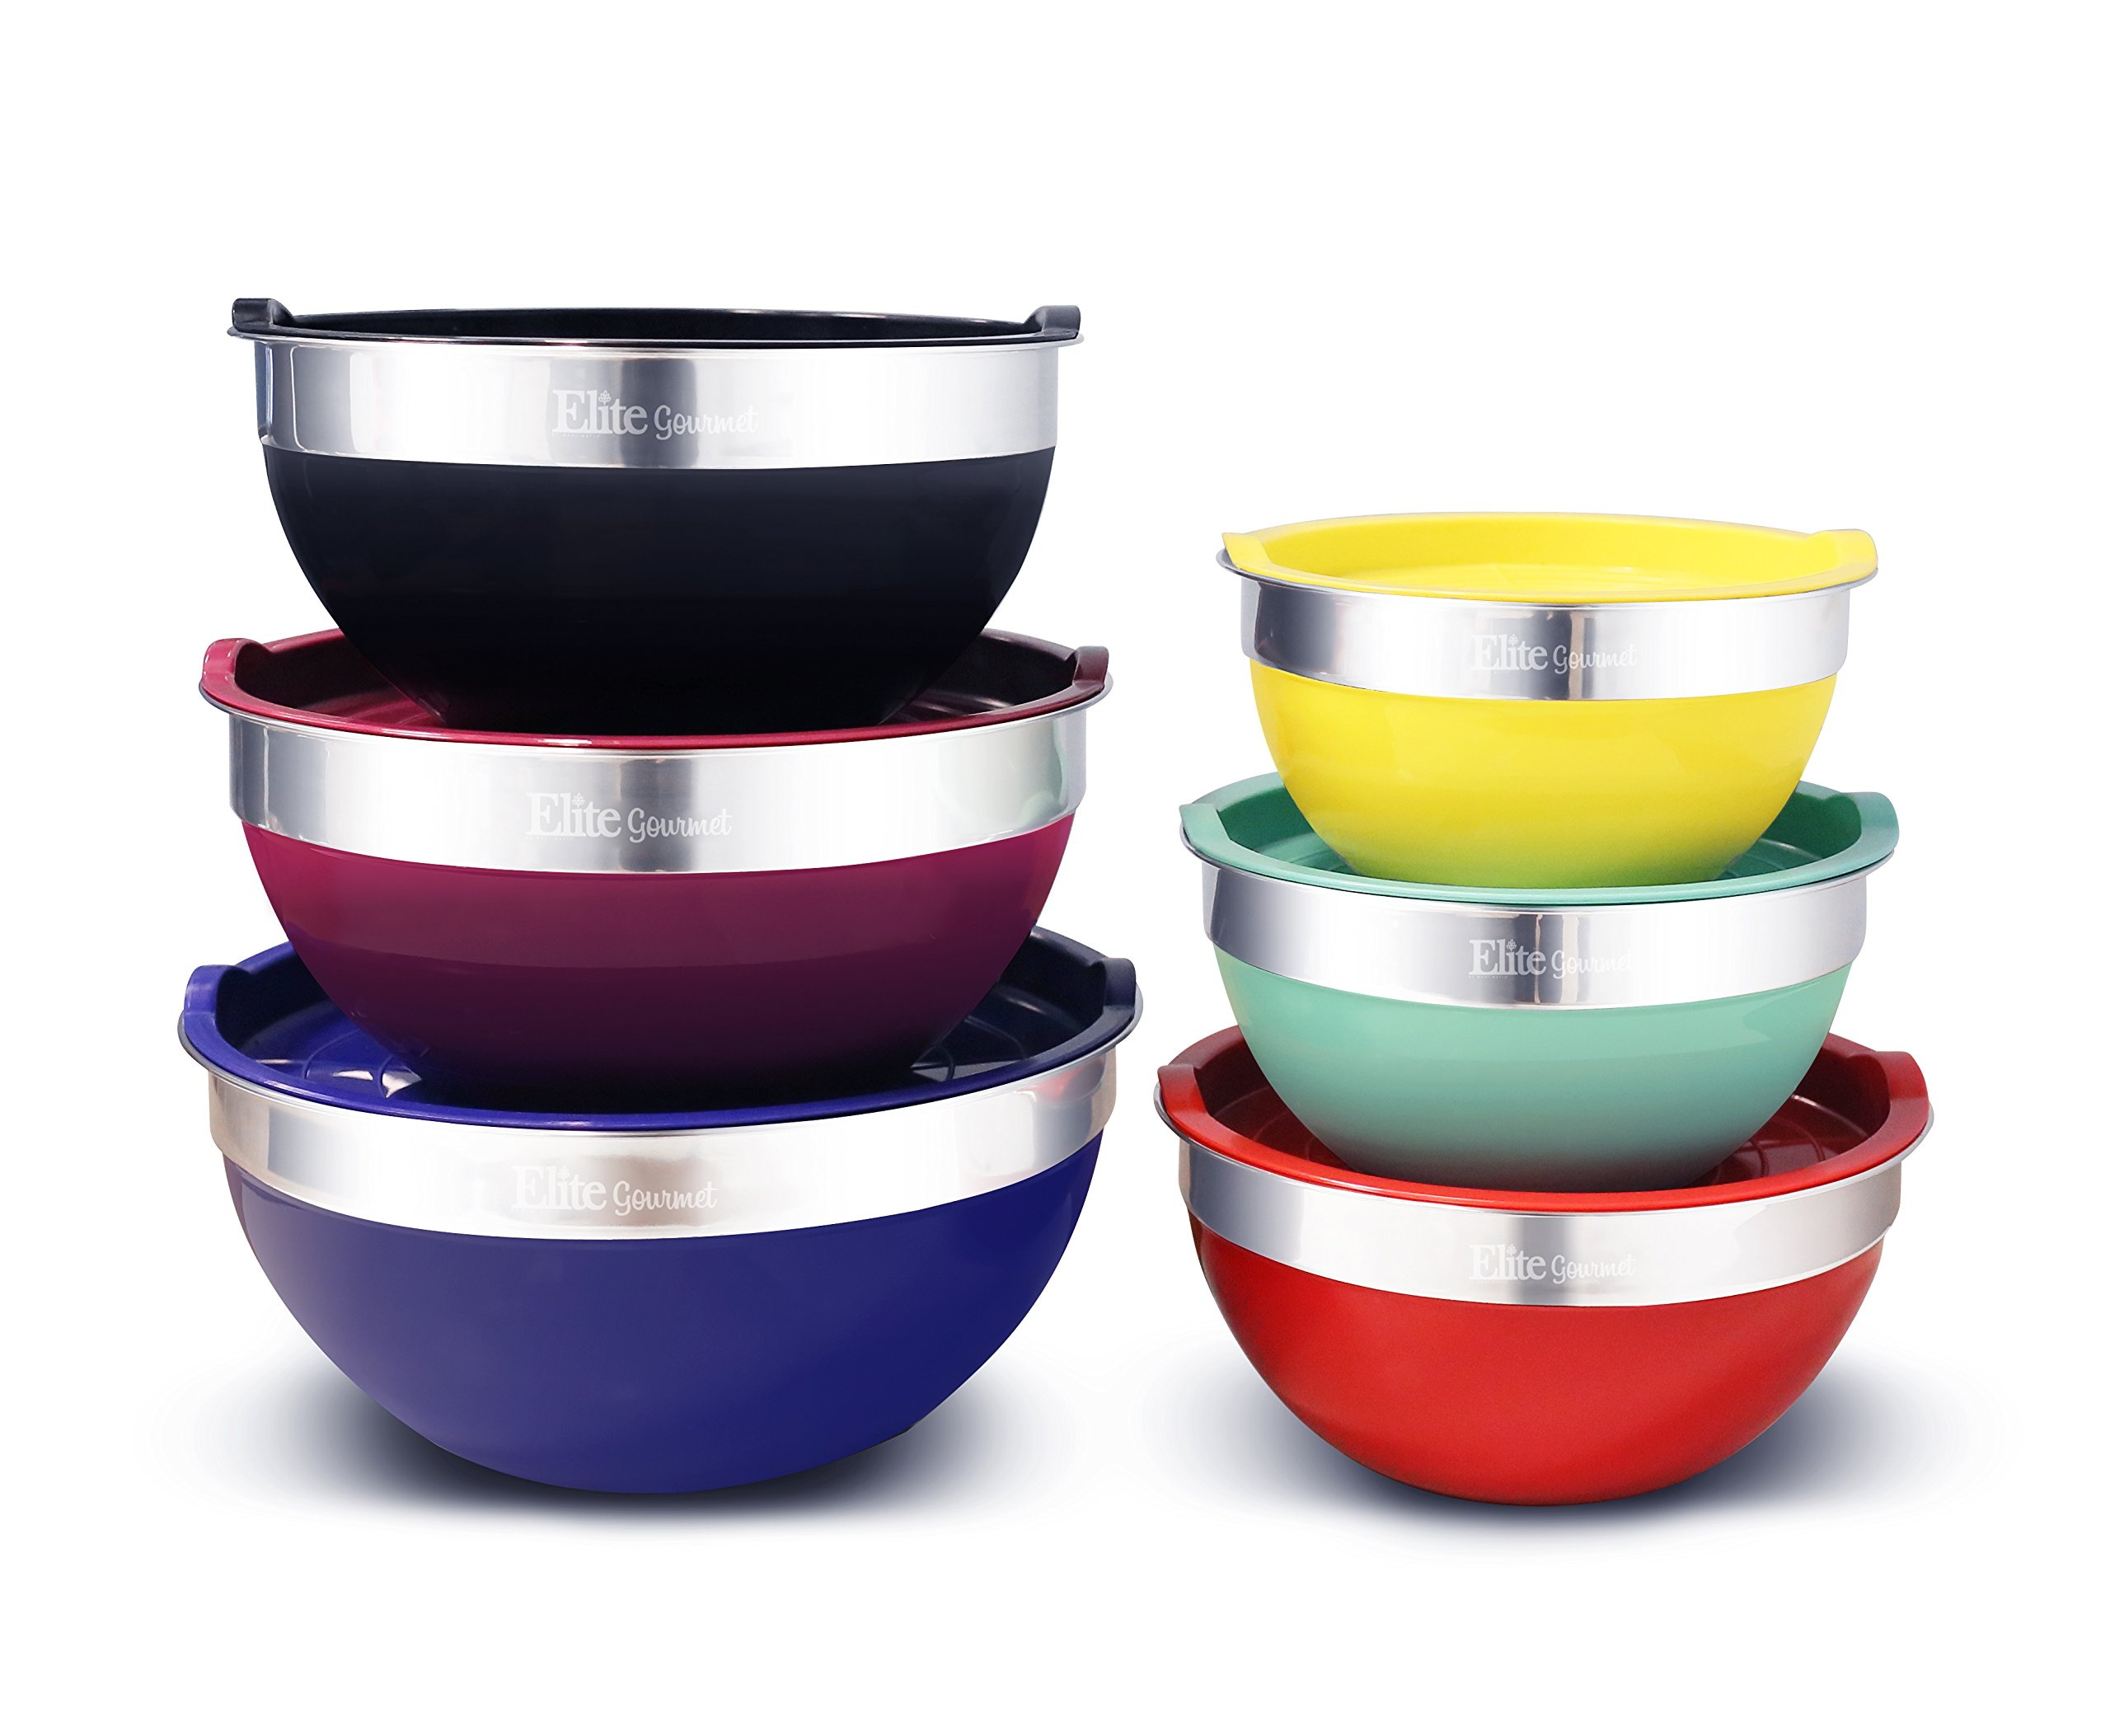 Elite Gourmet EBS-0012 Maxi-Matic 12-Piece Stainless Steel Colored Mixing Bowls with Lids, 7.25 Qt. - 6 Qt. - 3.5 Qt. - 3 Qt. - 2.25 Qt. - 2 Qt.